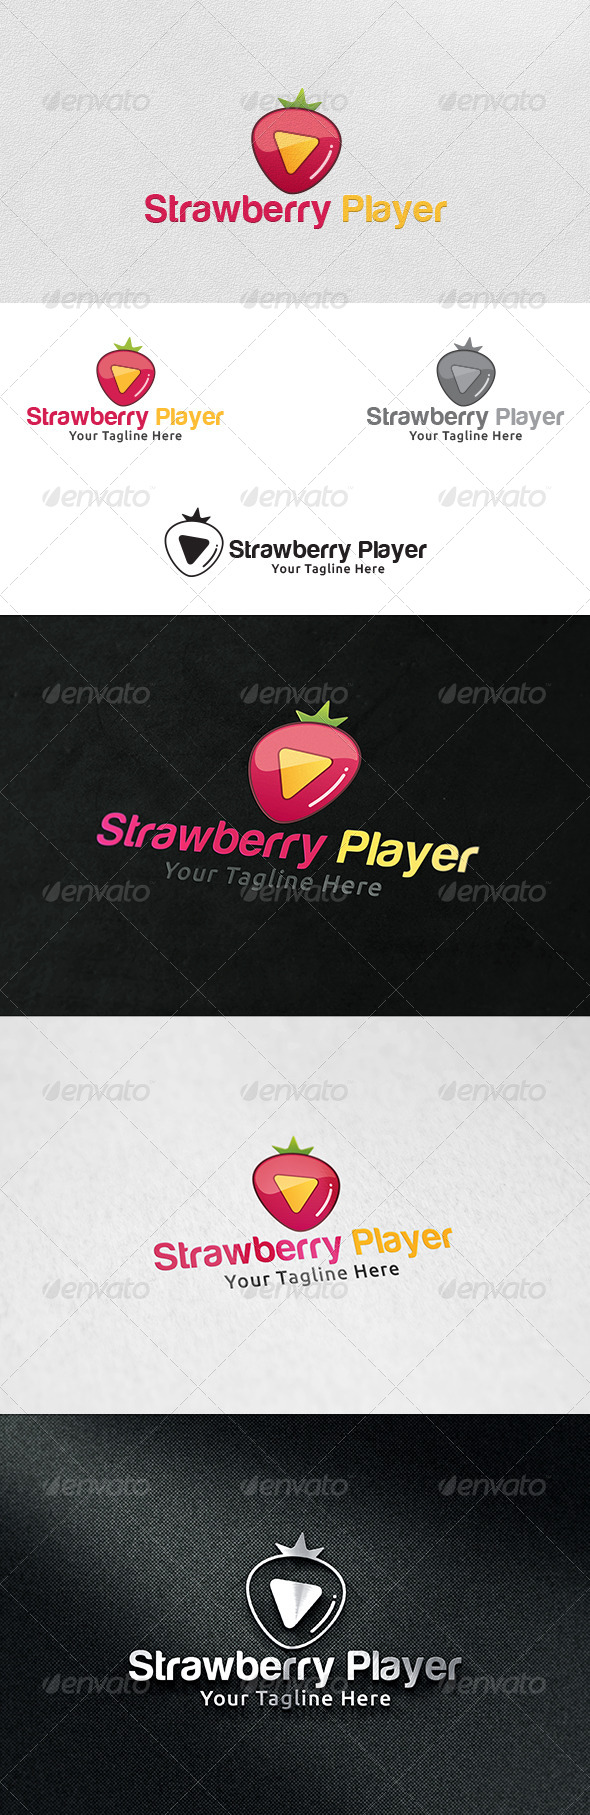 Strawberry Player Logo Template